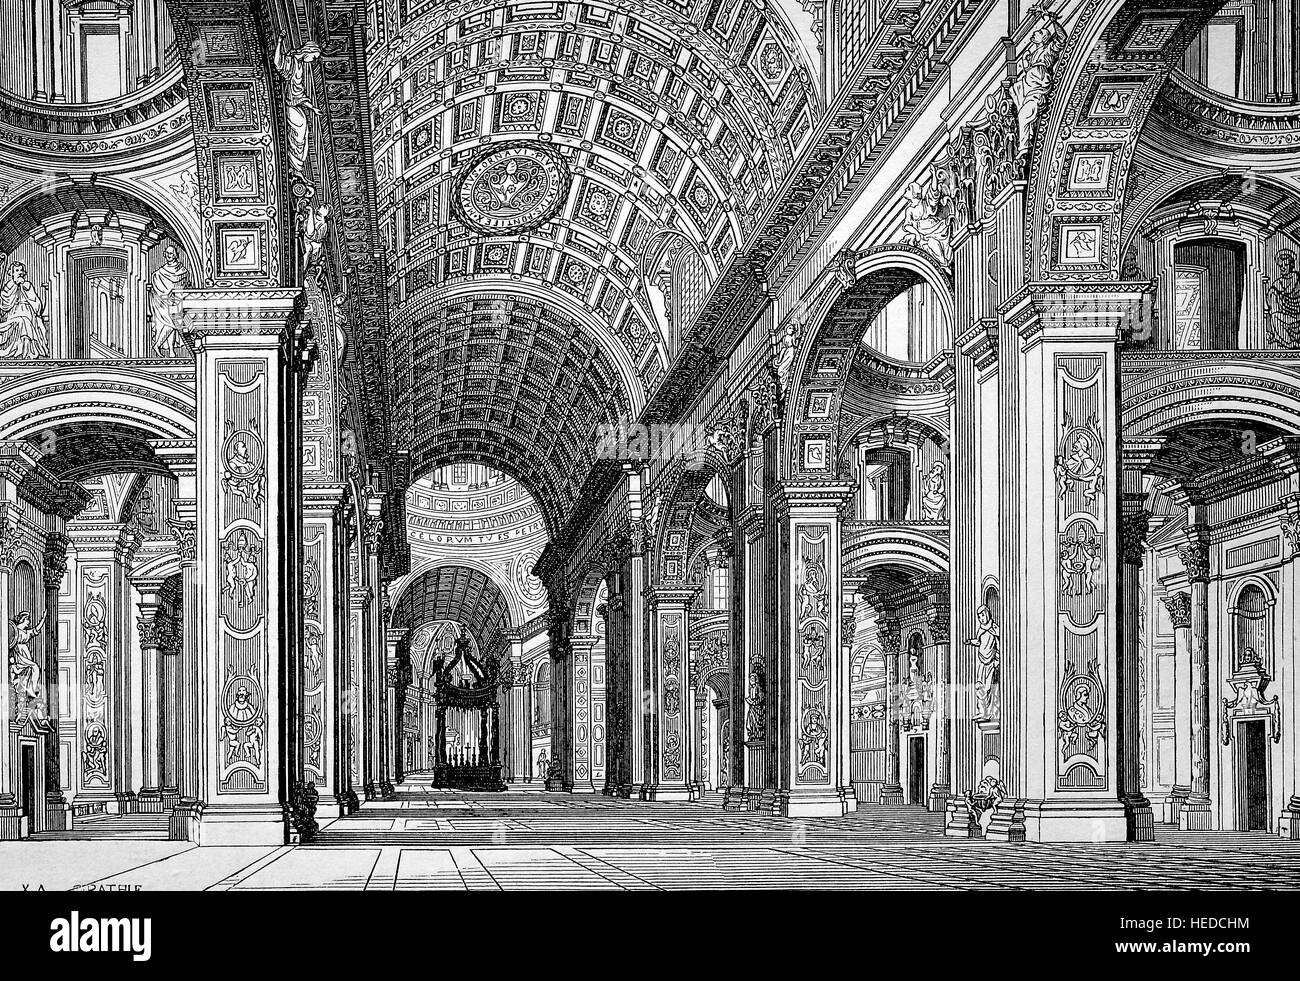 Inside the Papal Basilica of St. Peter in the Vatican or simply St. Peter's Basilica, an Italian Renaissance - Stock Image